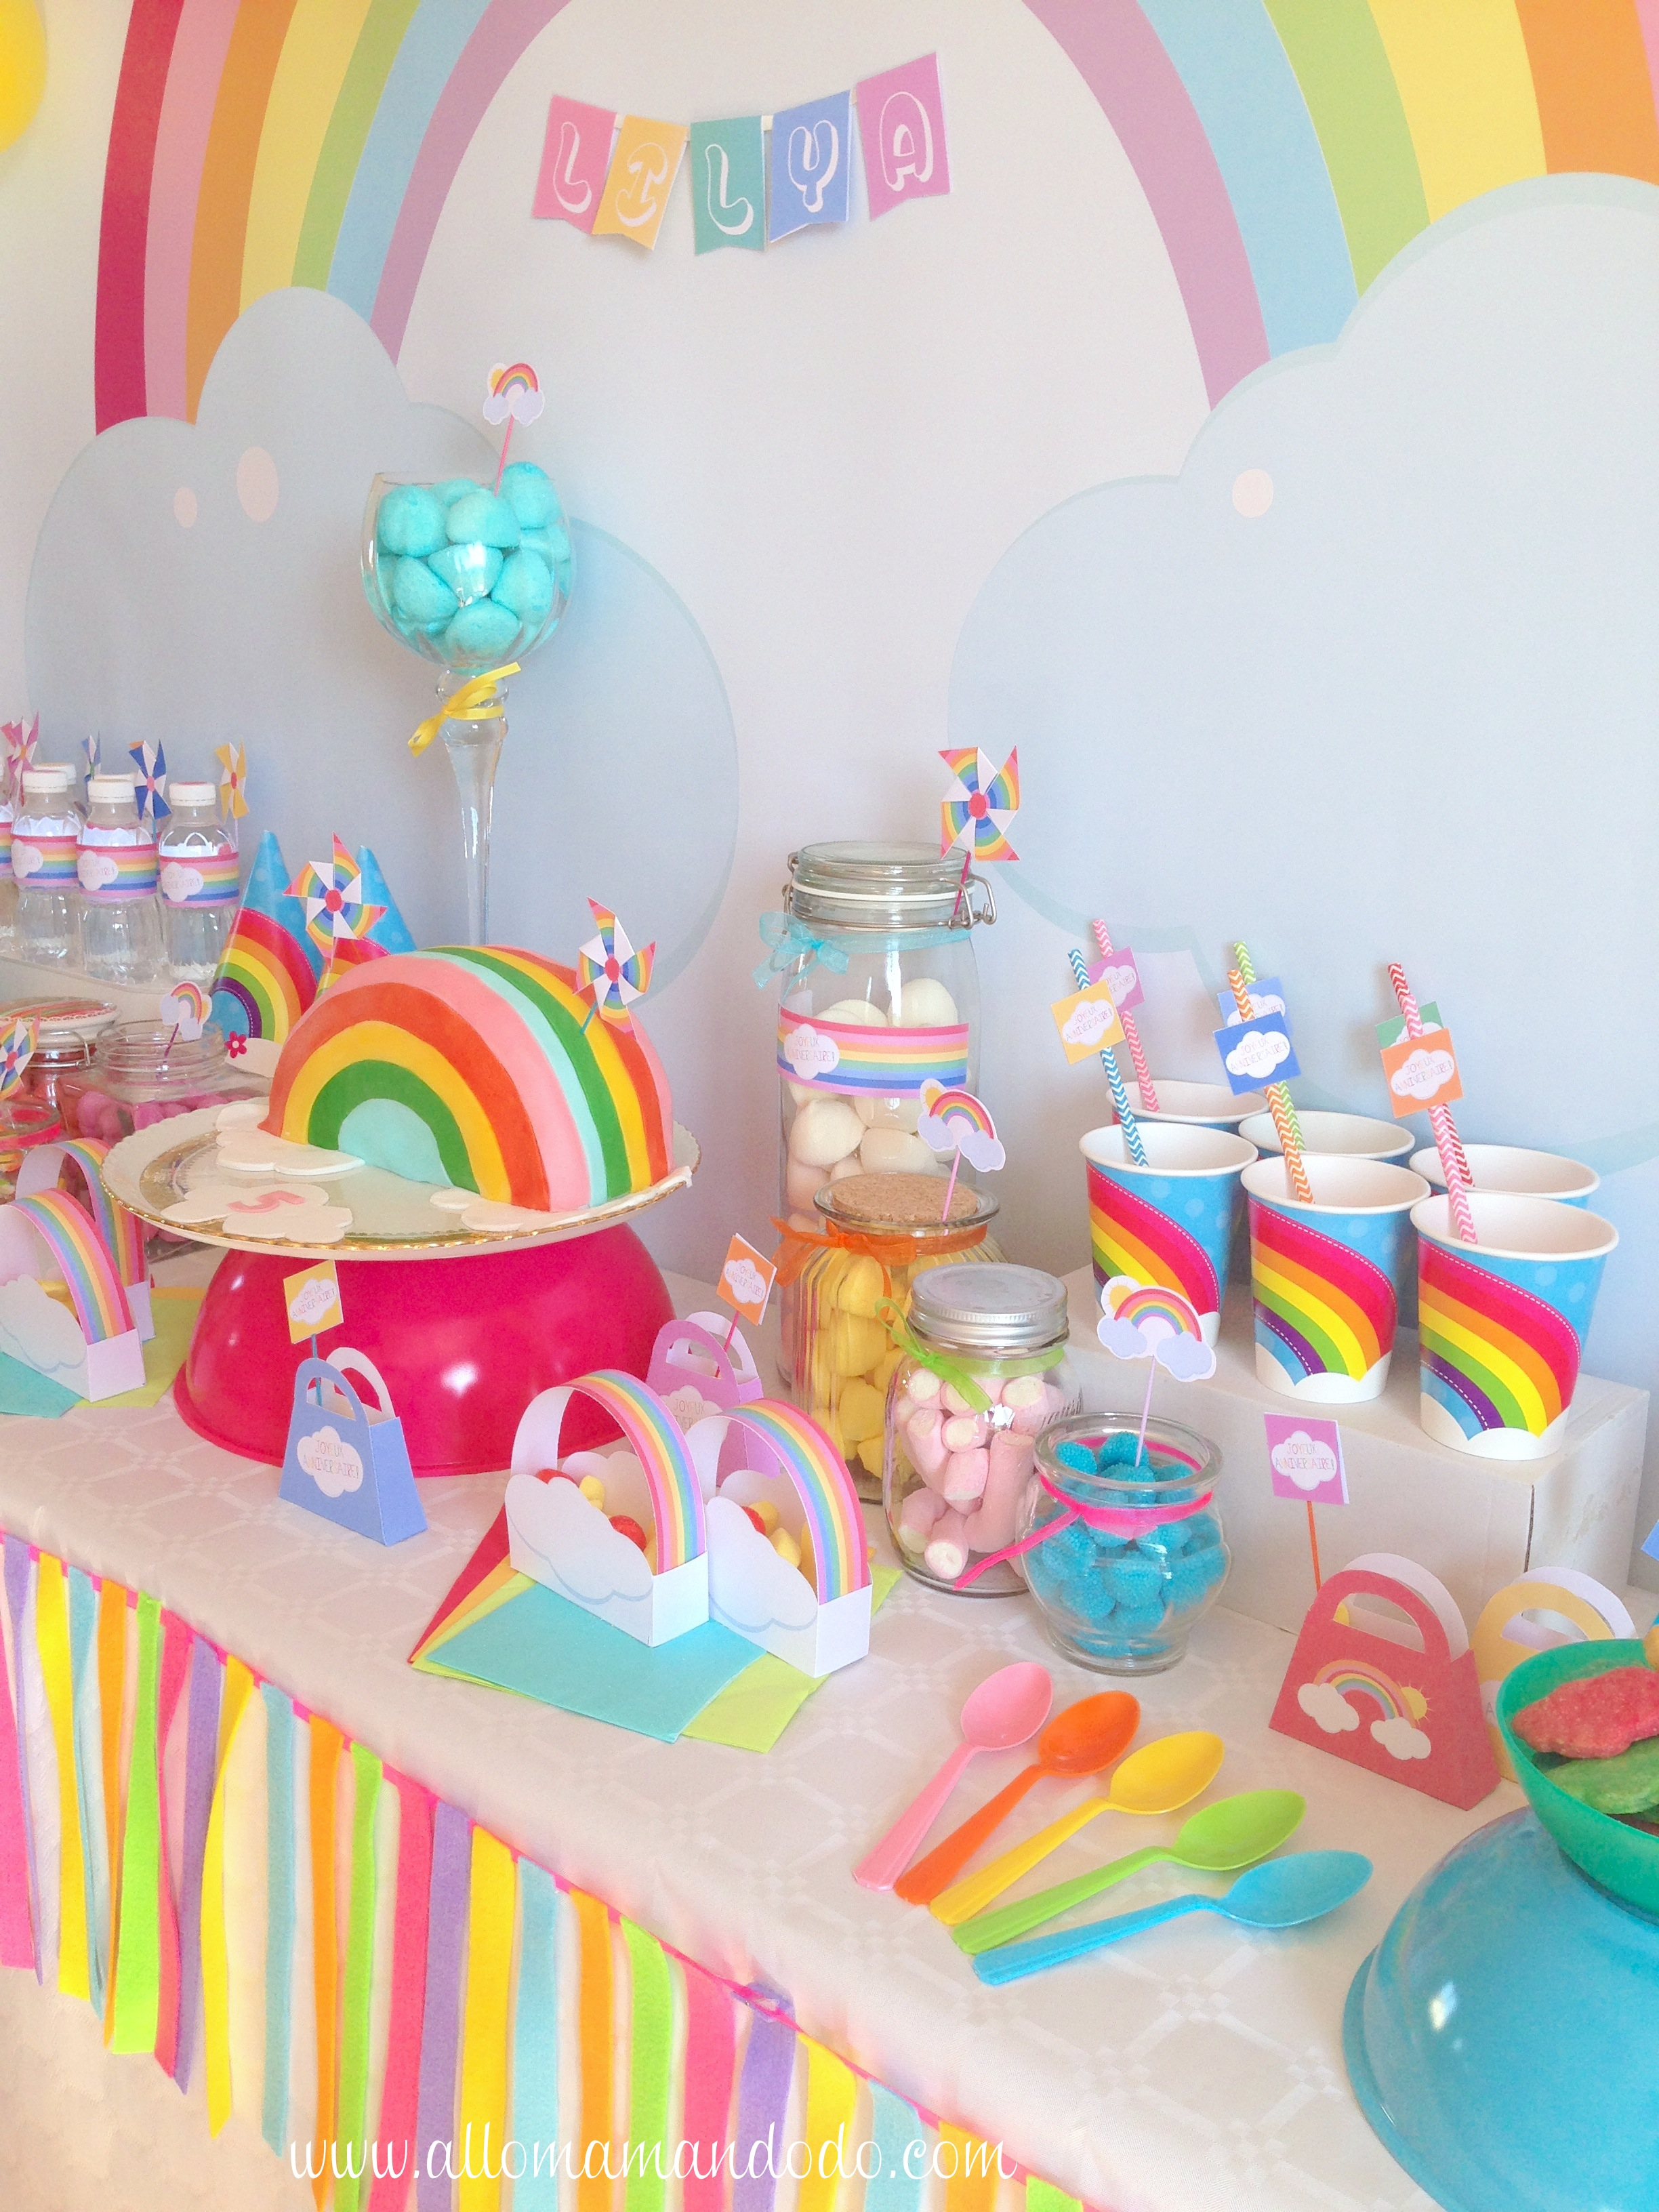 La sweet table d co d 39 anniversaire arc en ciel les for Photo de decoration